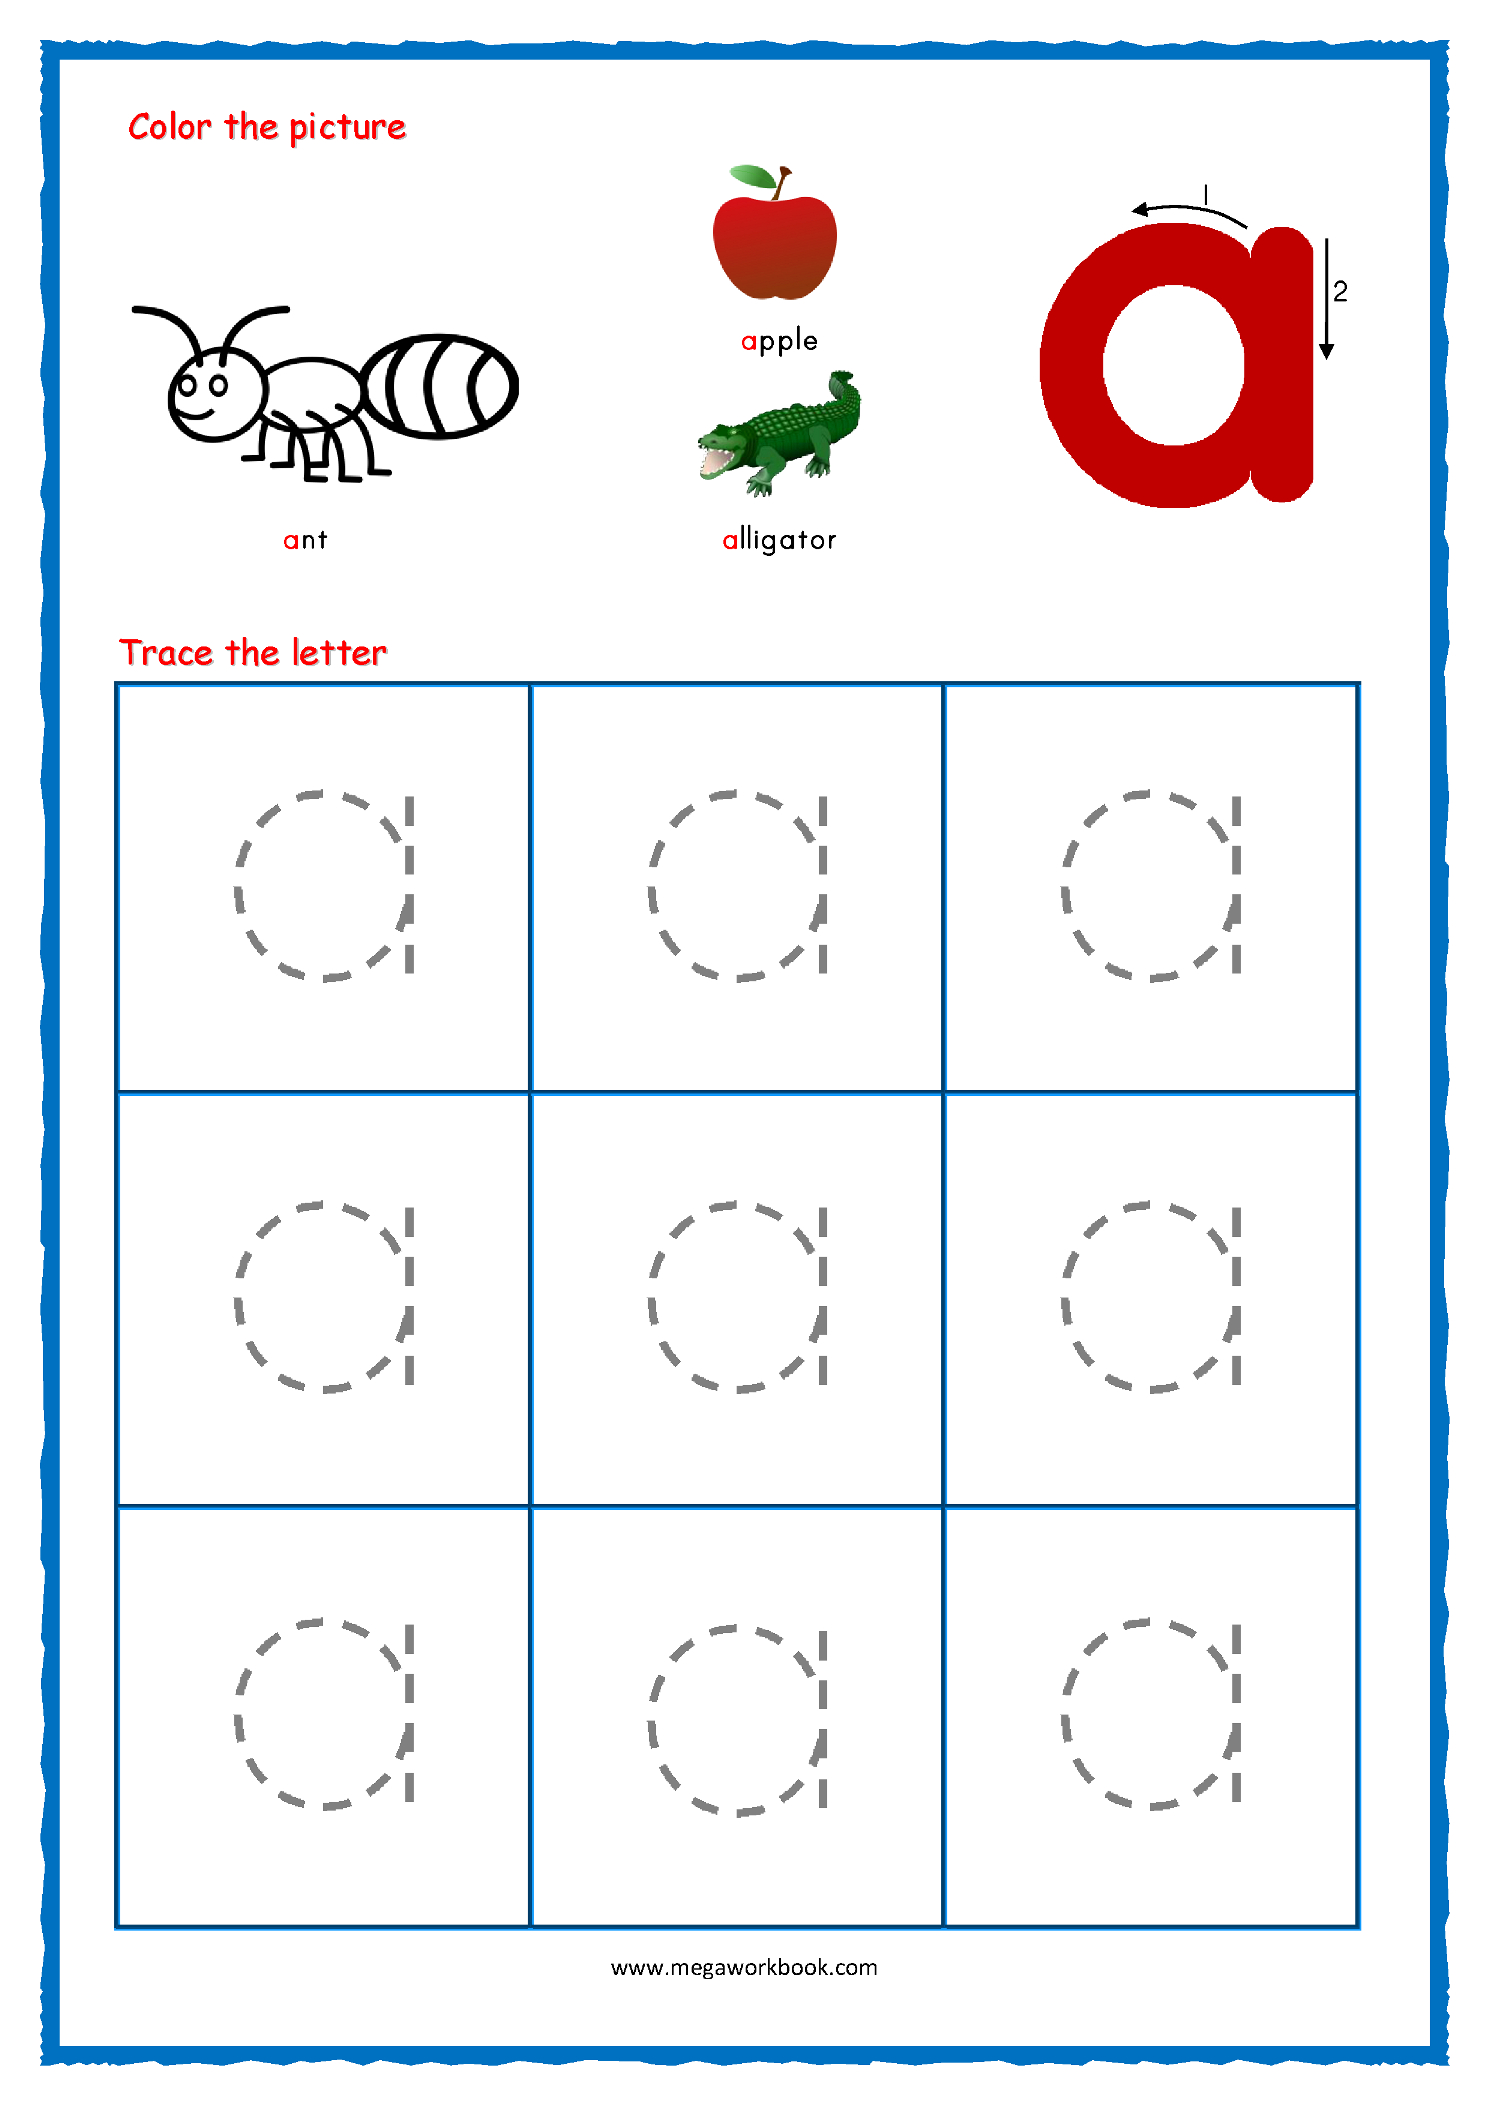 Alphabet Tracing - Small Letters - Alphabet Tracing with regard to Tracing Small Letter G Worksheet